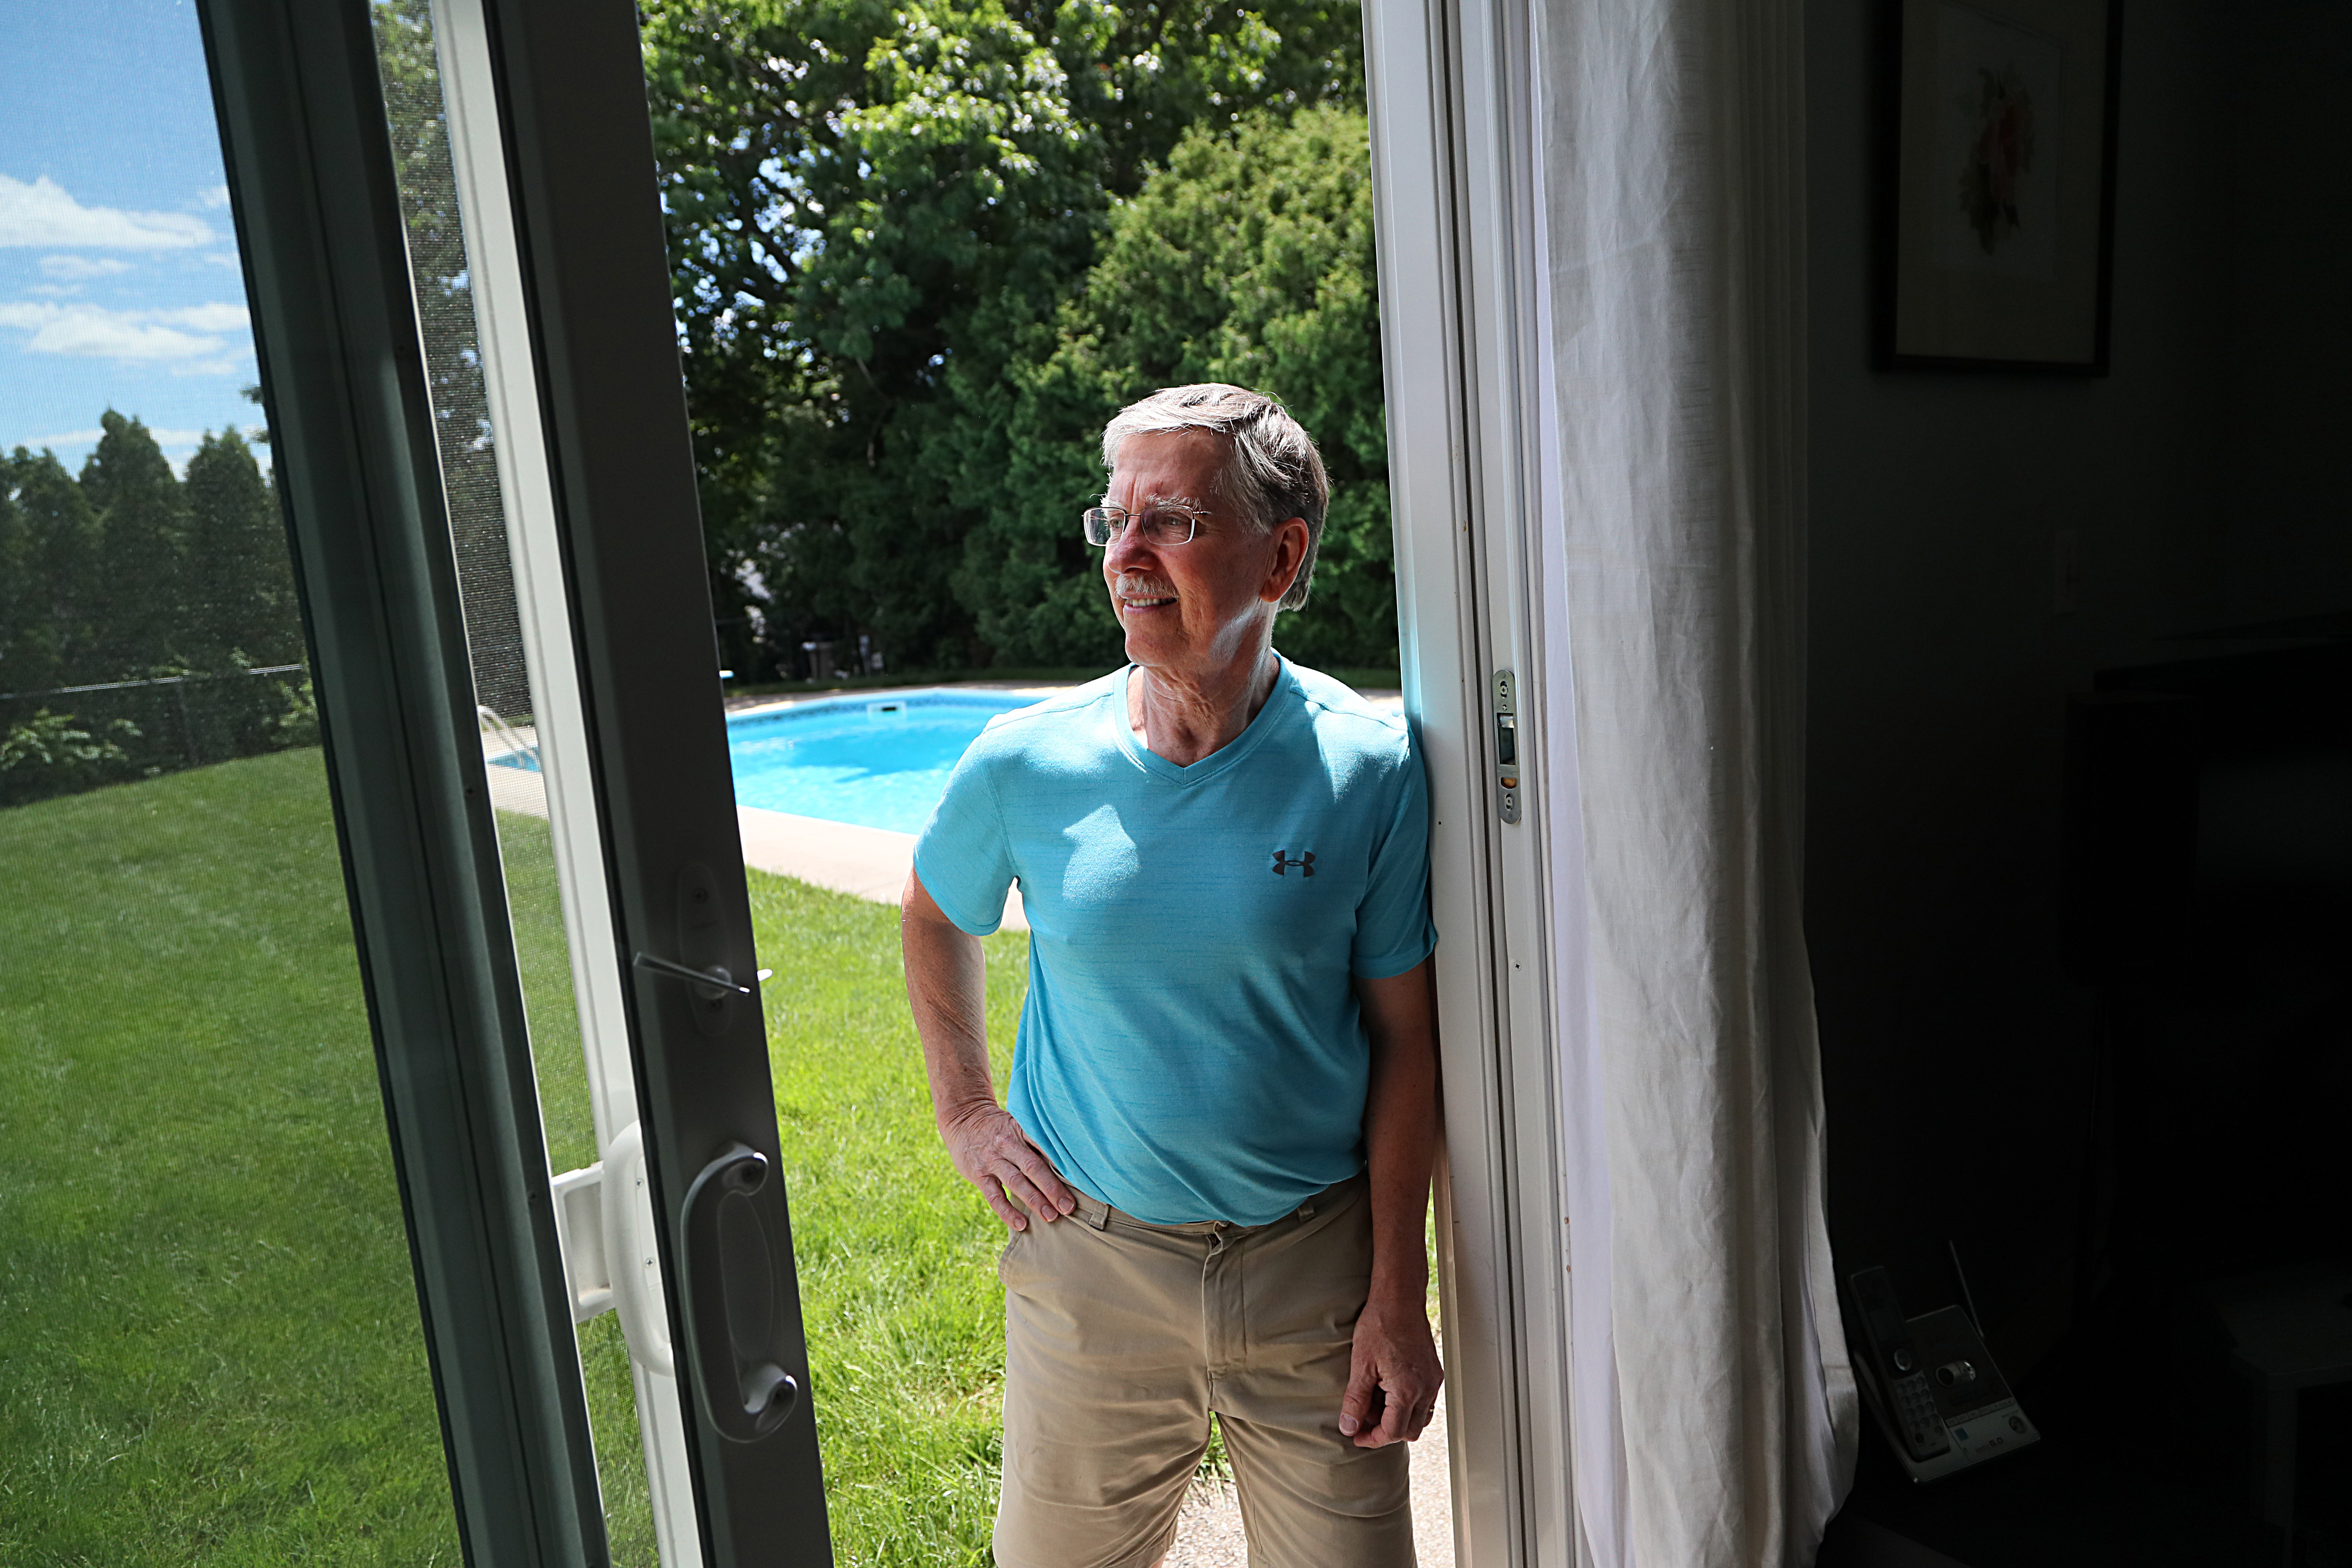 John Hine, a senior business analyst for Bay State Health, took advantage of technology to postpone his retirement and work part time from his home office, which looks out at his backyard pool.